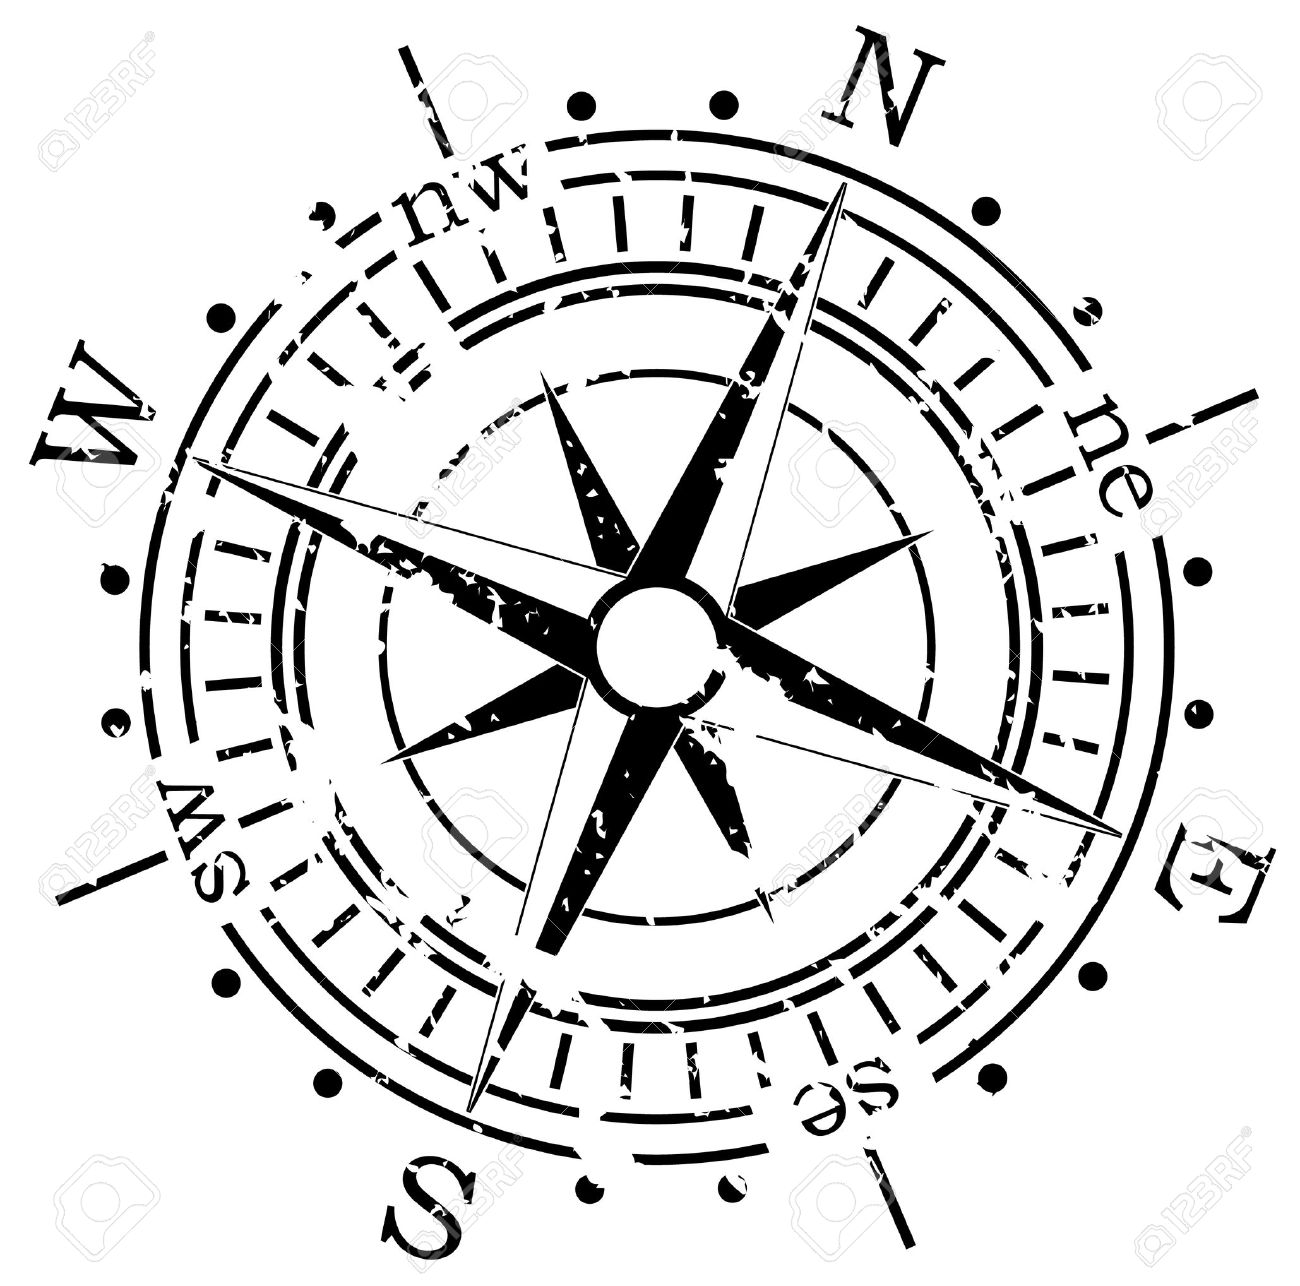 Antique Compass Drawing At GetDrawings